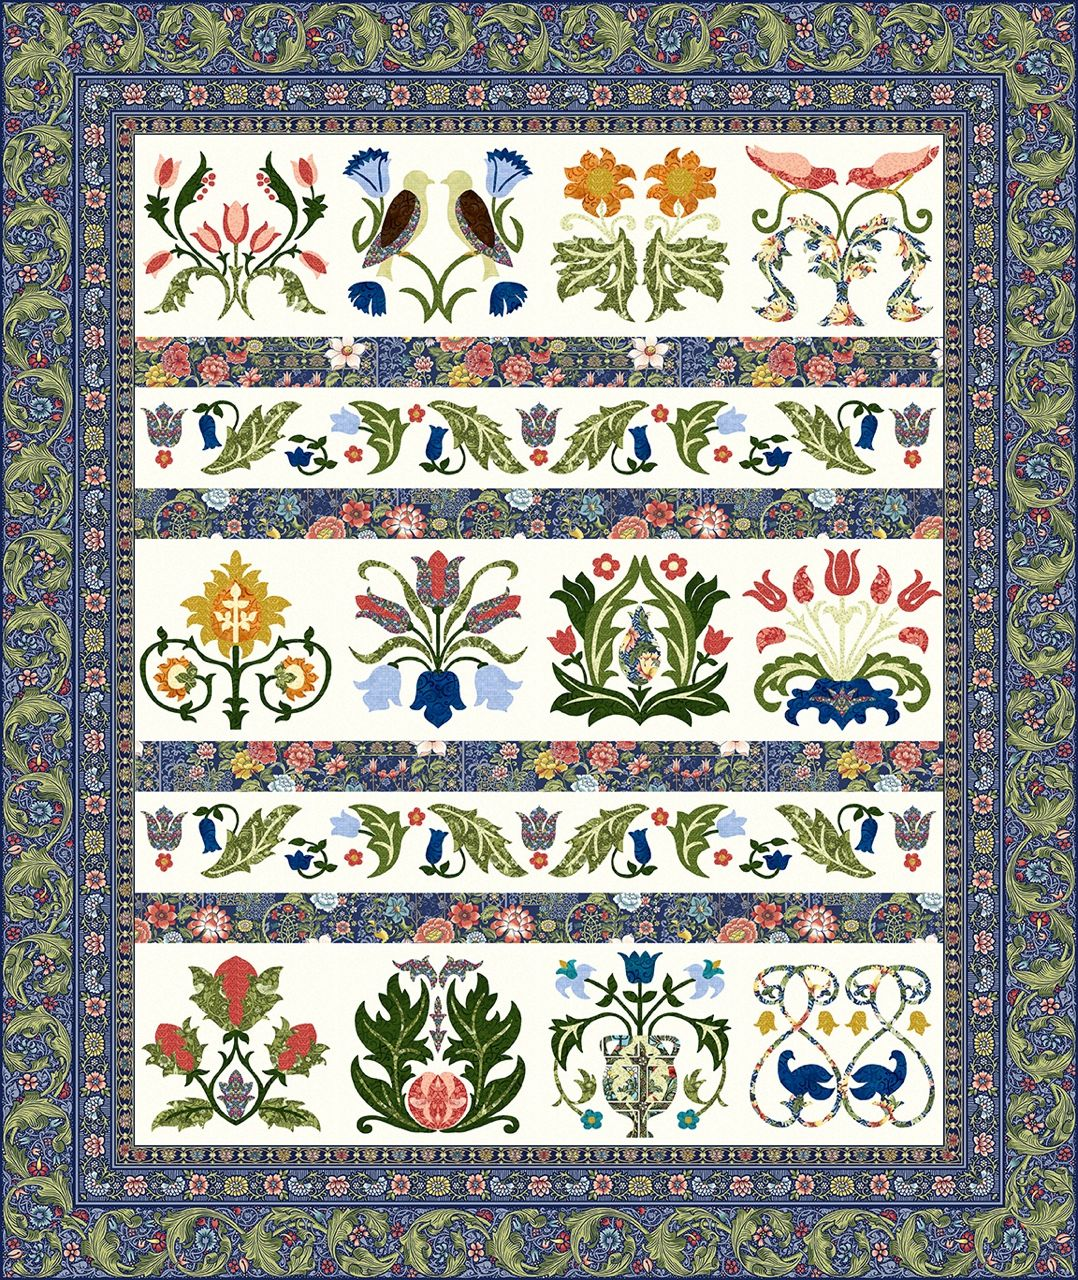 quilt projects Quilting projects: free quilting projects and quilt block patterns for rag quilts, baby quilts, artistic quilts, wall hangings and beginner quilts.